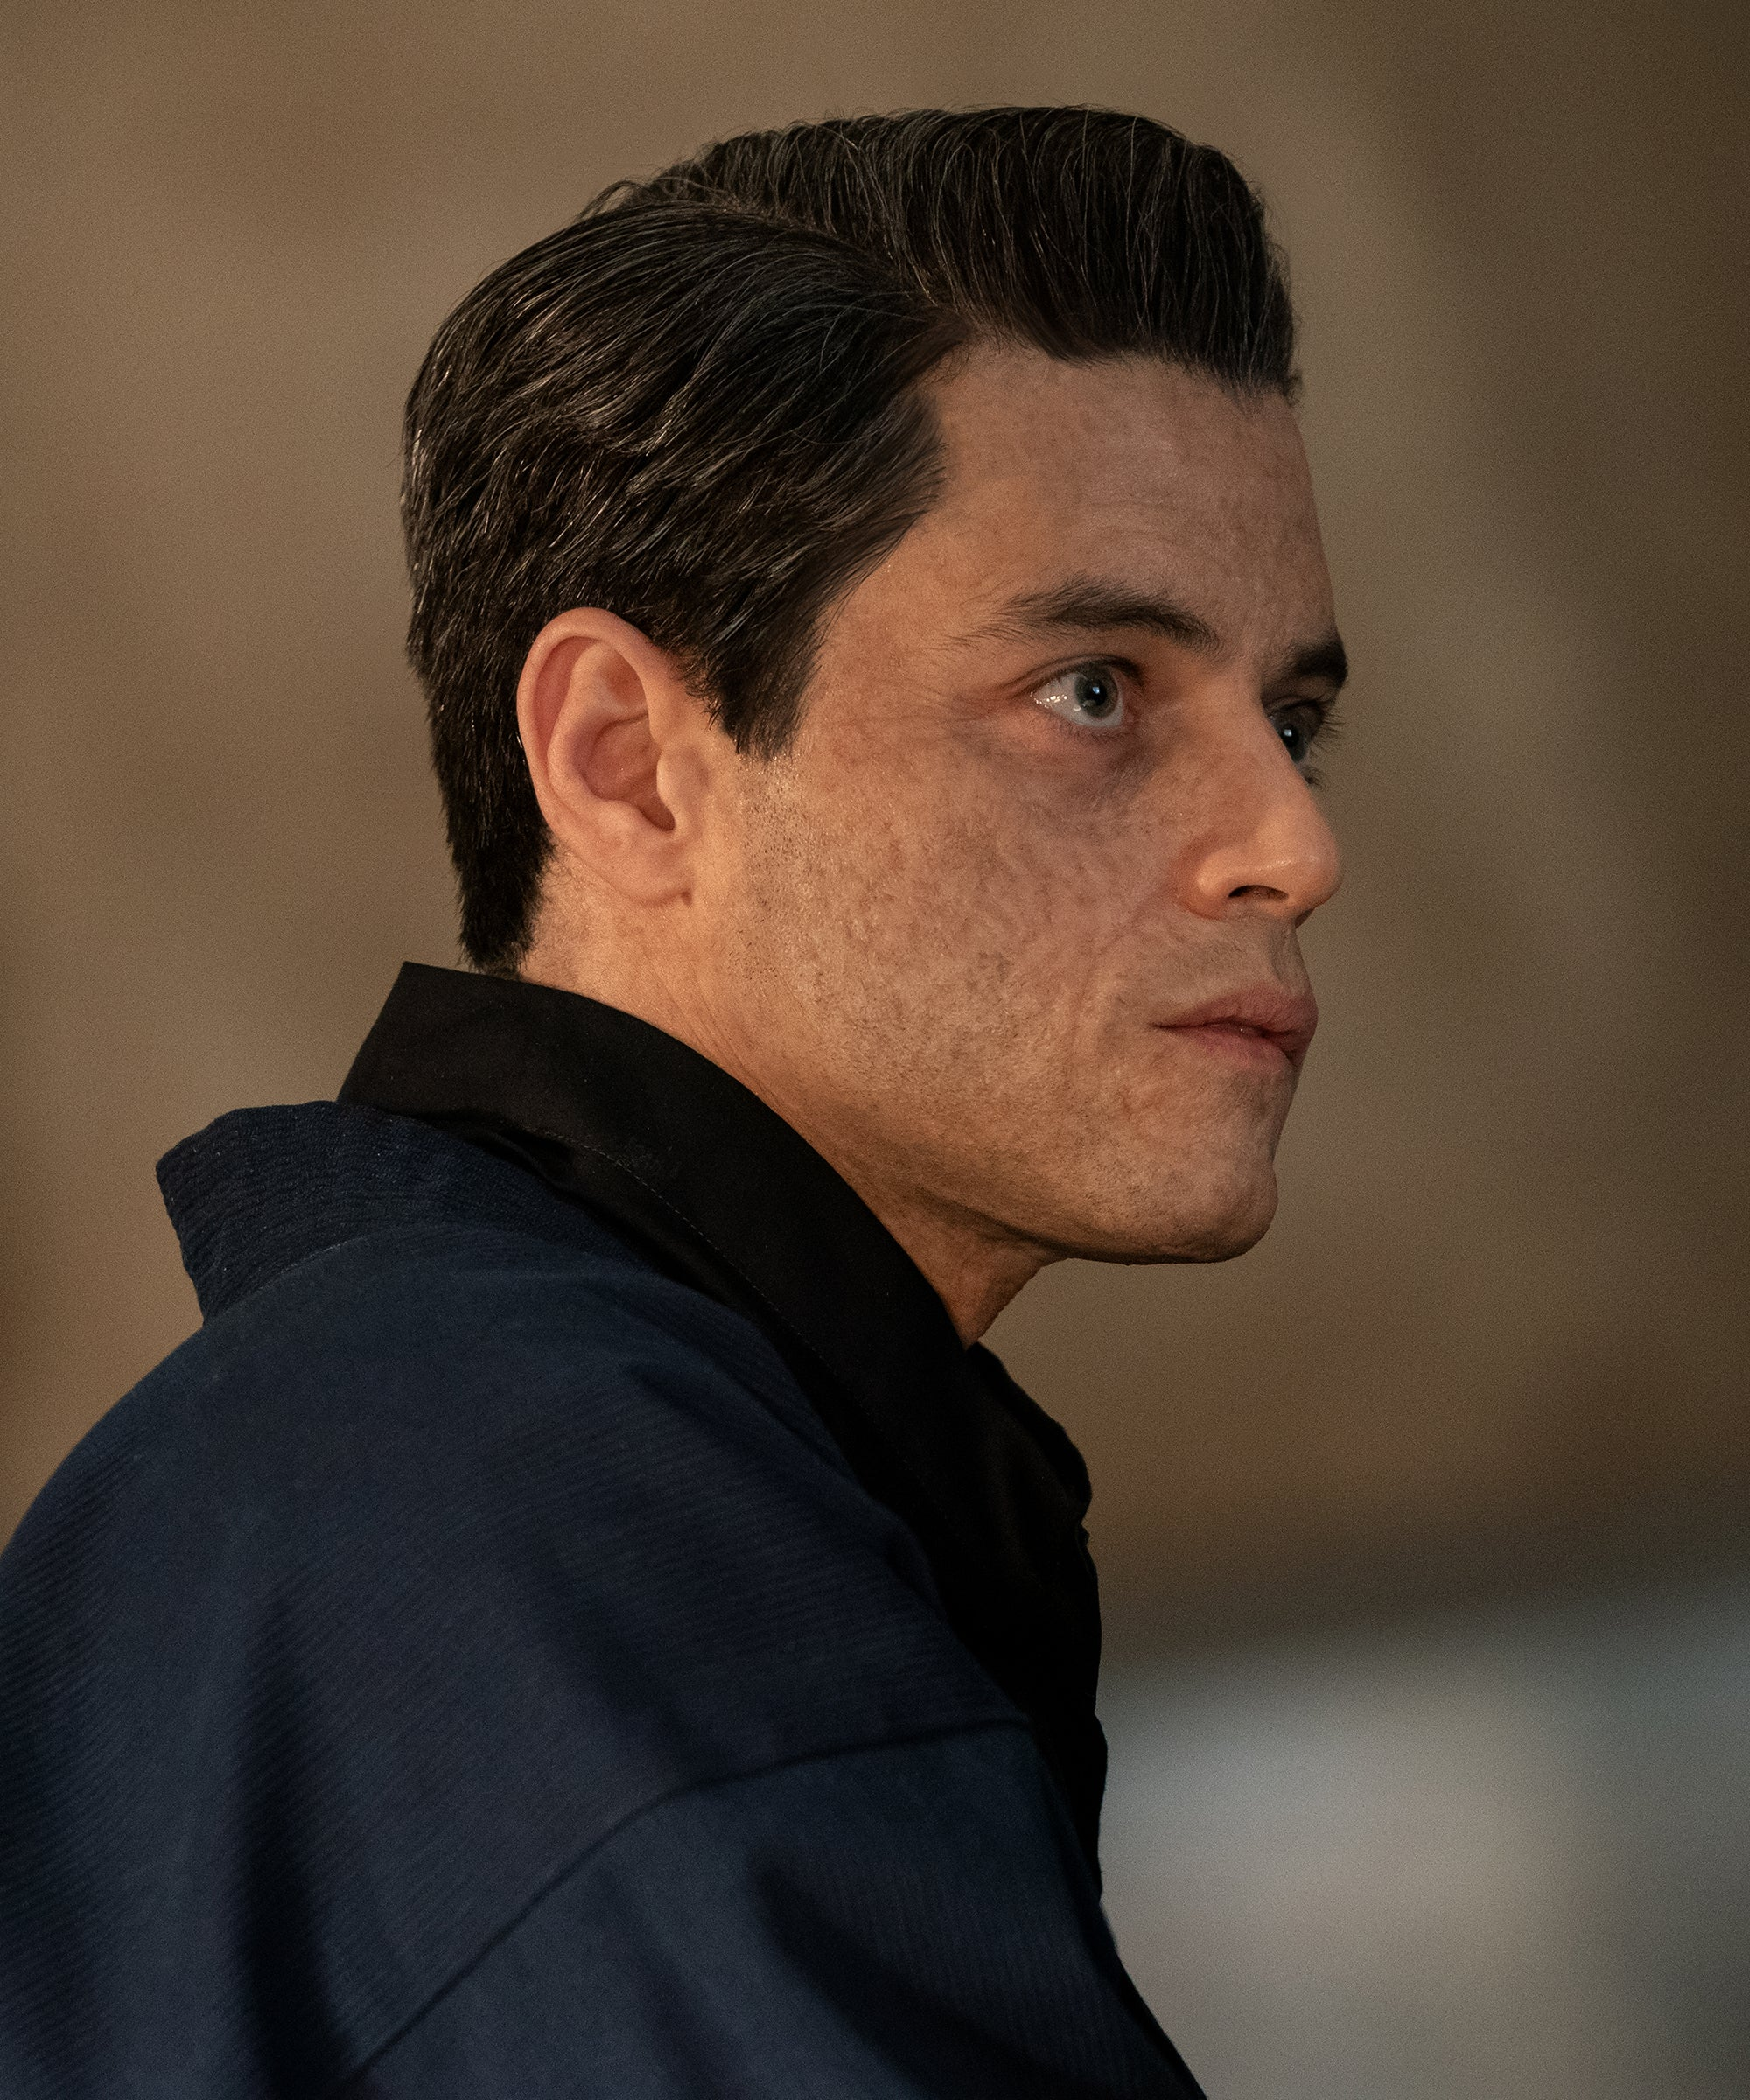 Rami Malek Makes An Extremely Good Villain In The New James Bond Trailer